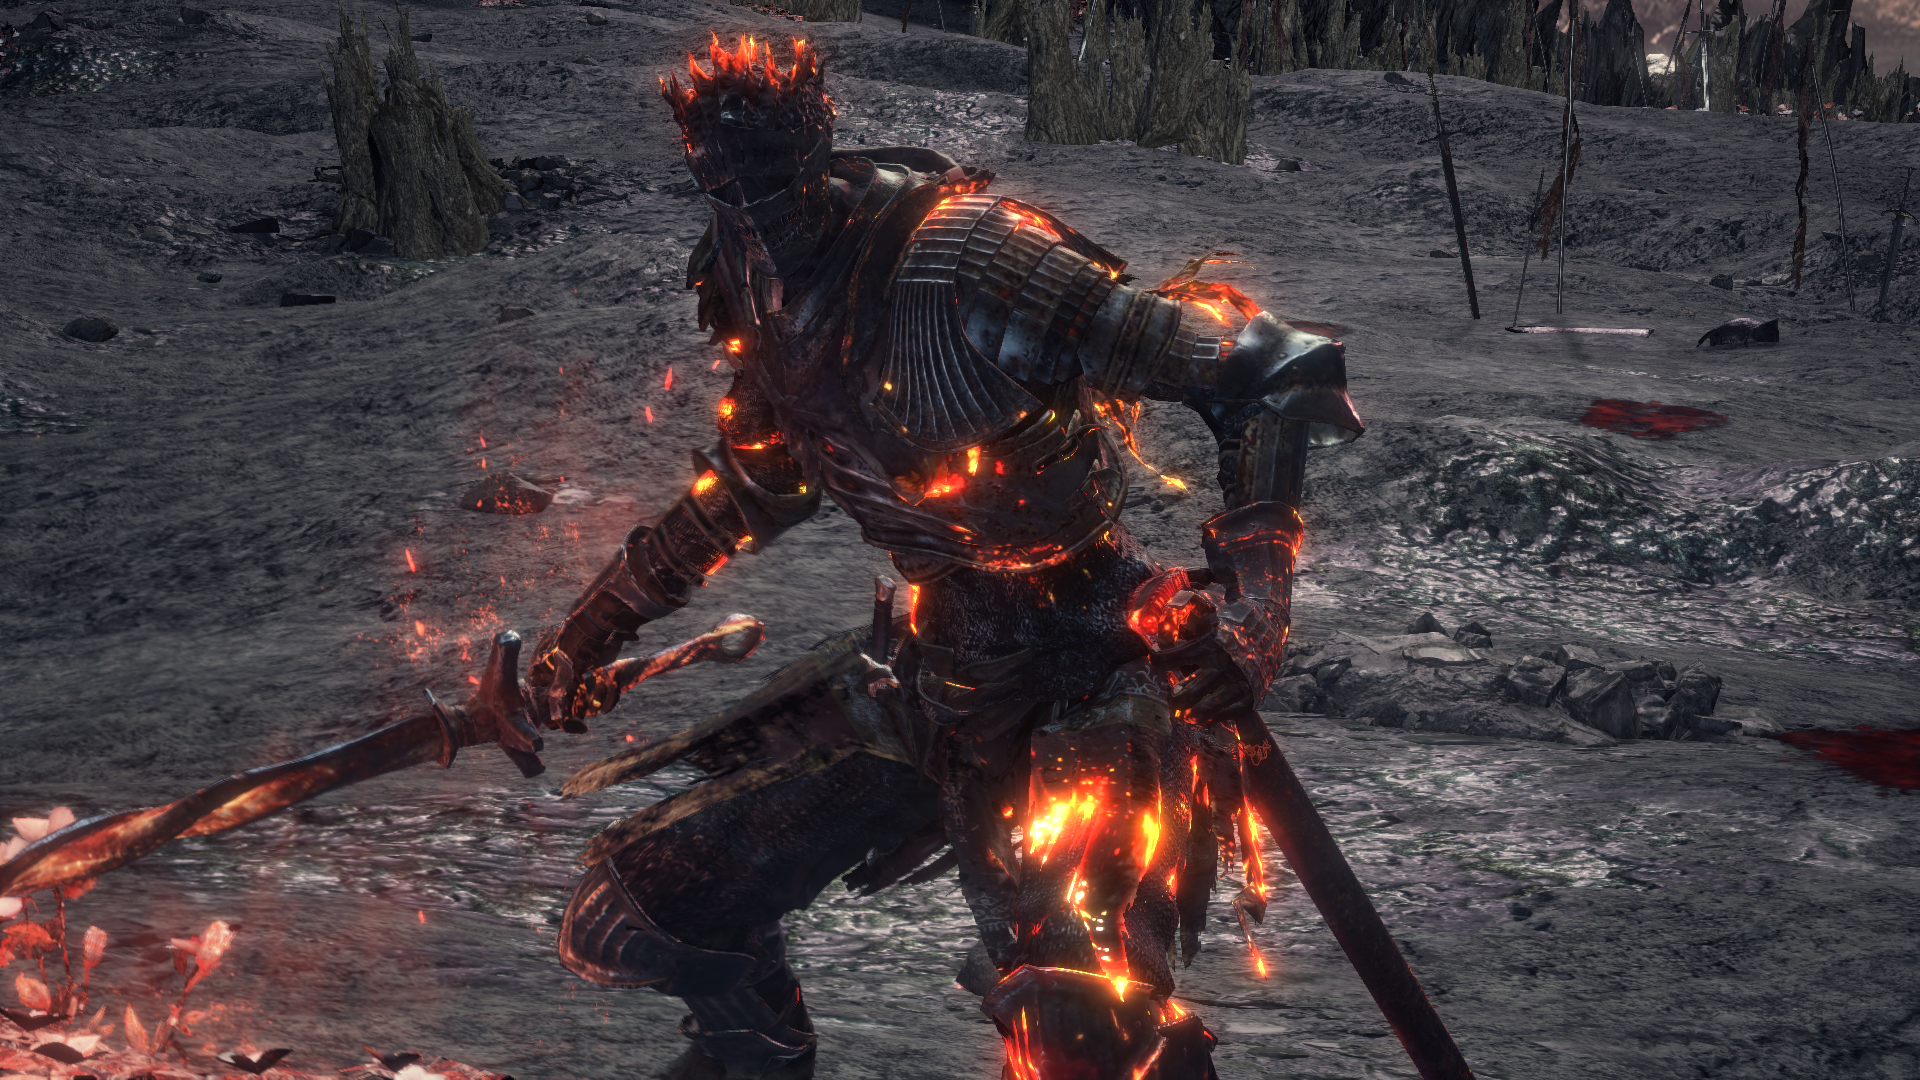 Soul of Cinder during the final boss fight of Dark Souls III